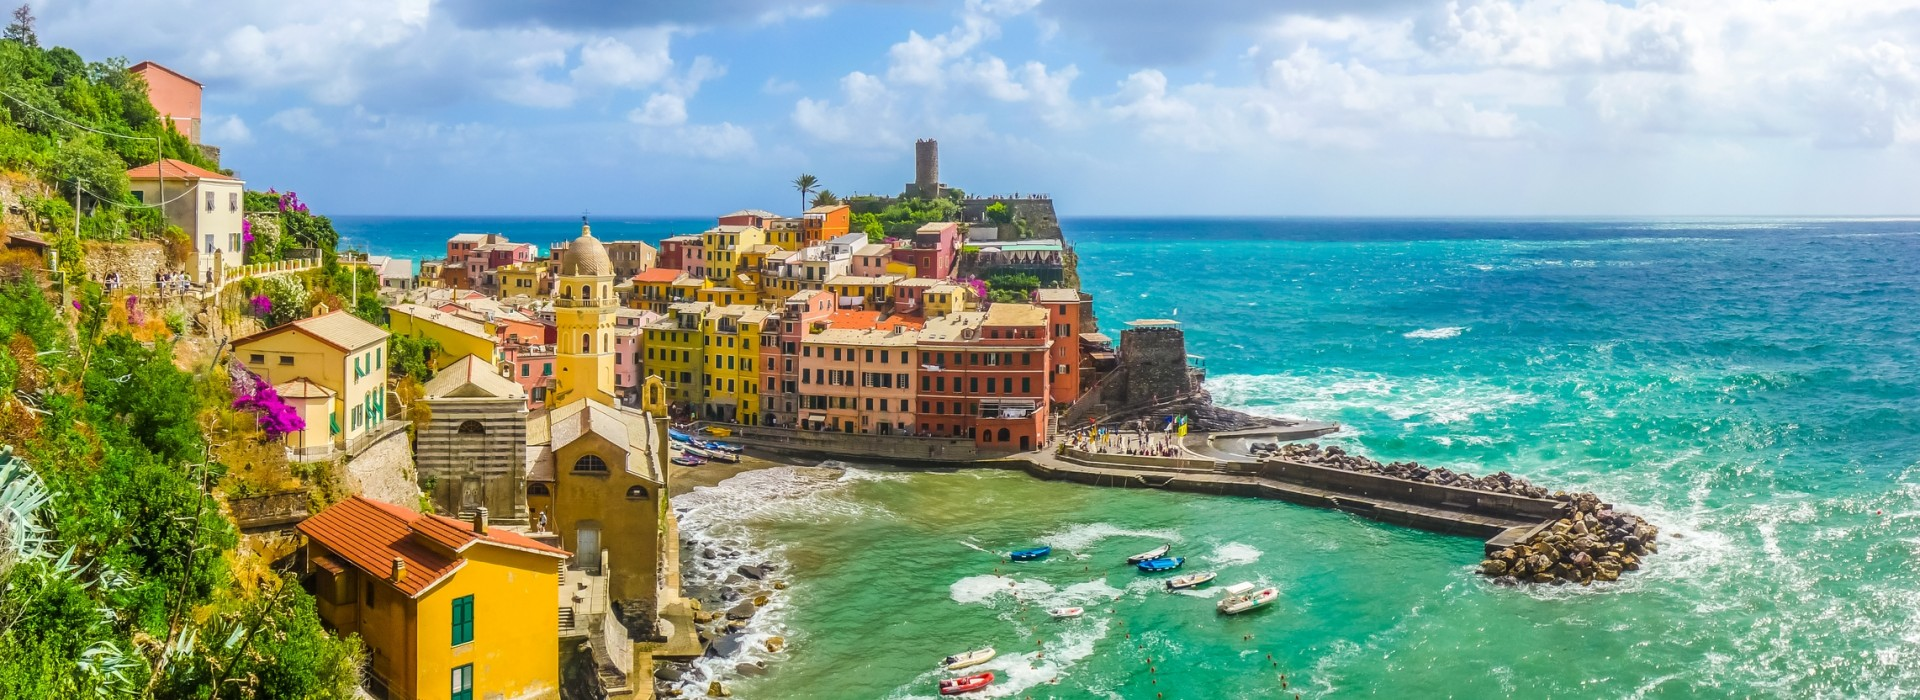 From awe-inspiring history and architecture to delicious Italian cuisine, Italy is a beautiful country that should be on everyone's bucket list!